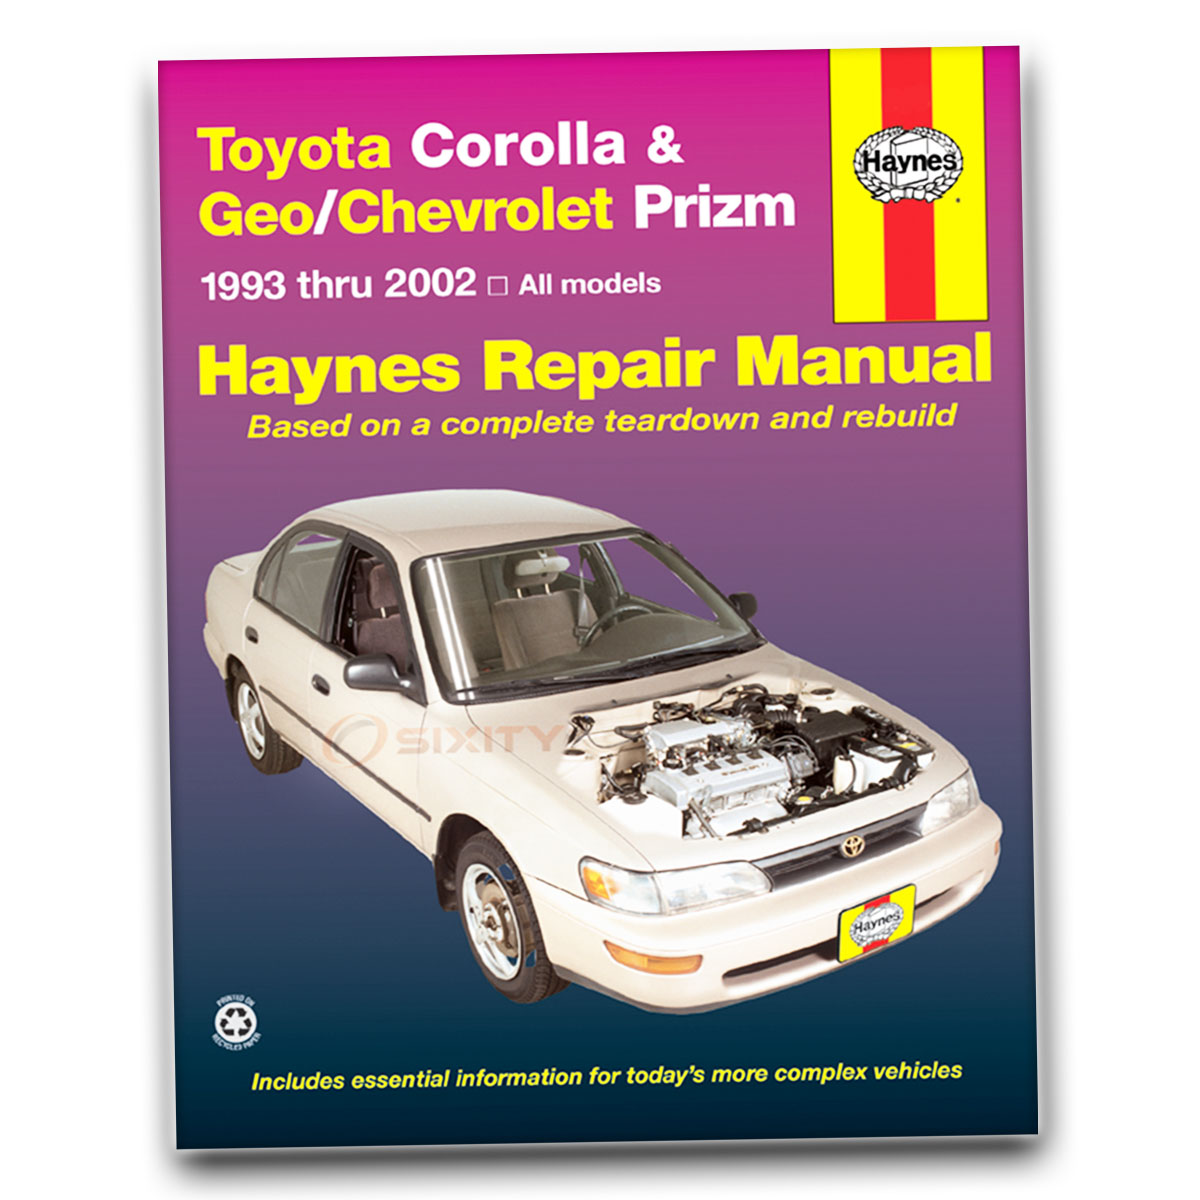 toyota corolla haynes repair manual s ve dx ce base le shop service rh ebay com 1993 Cadillac STS Interior 1993 Cadillac STS Inside